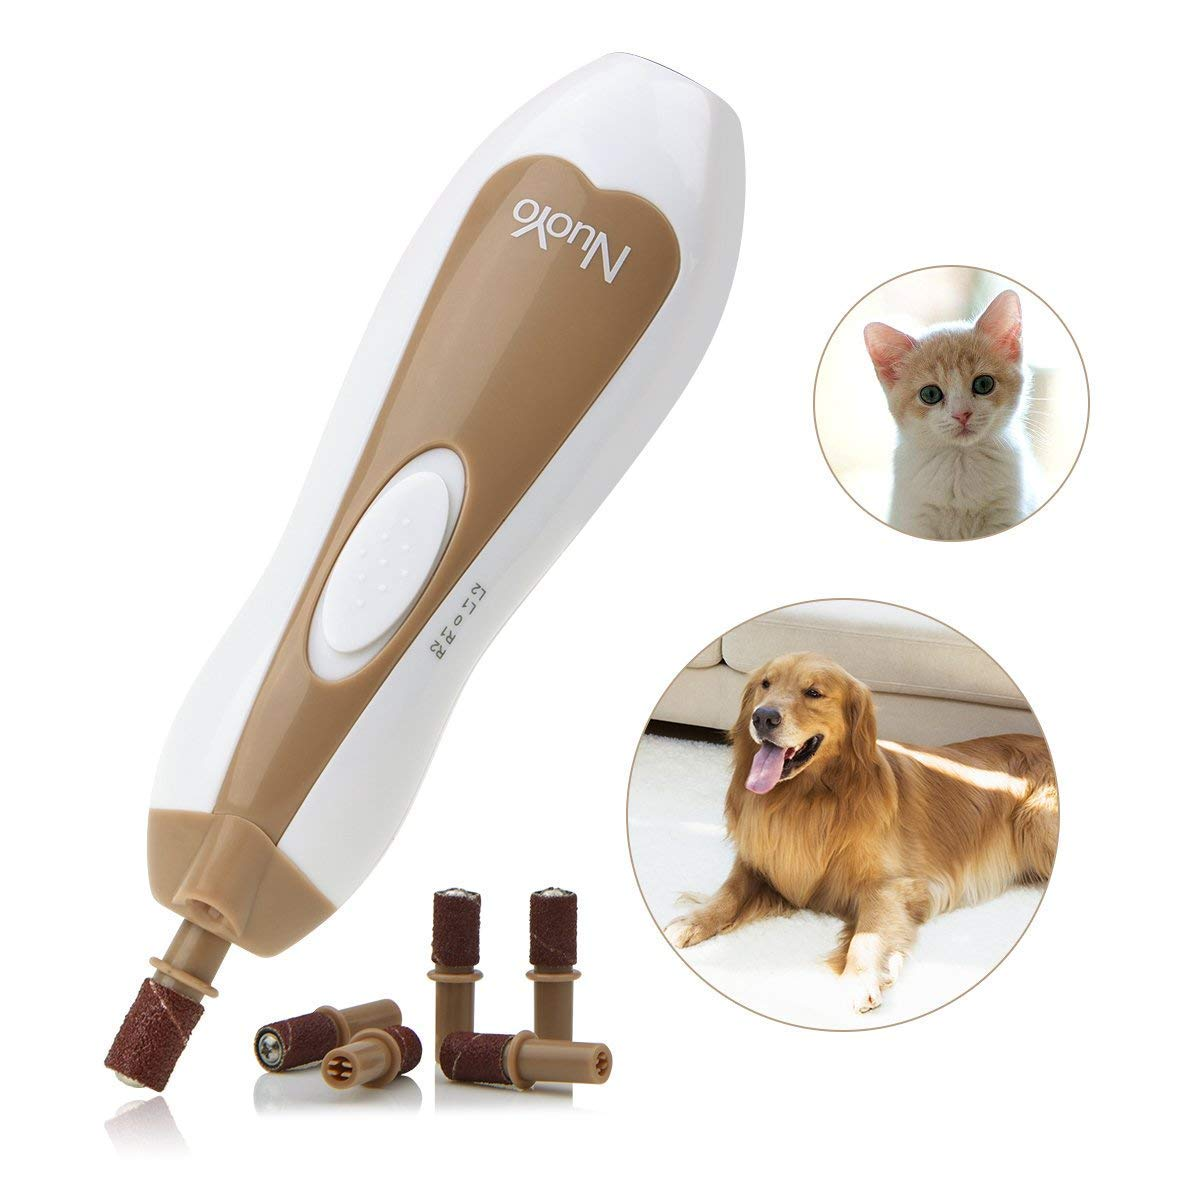 Electric Pet Nail Grinder, Paw Trimmer Clipper, Grooming,Trimming, Shaping, and Smoothing Tool with 6 Sanding Bands for Dogs Cats and Other Small & Medium Pets by NuoYo